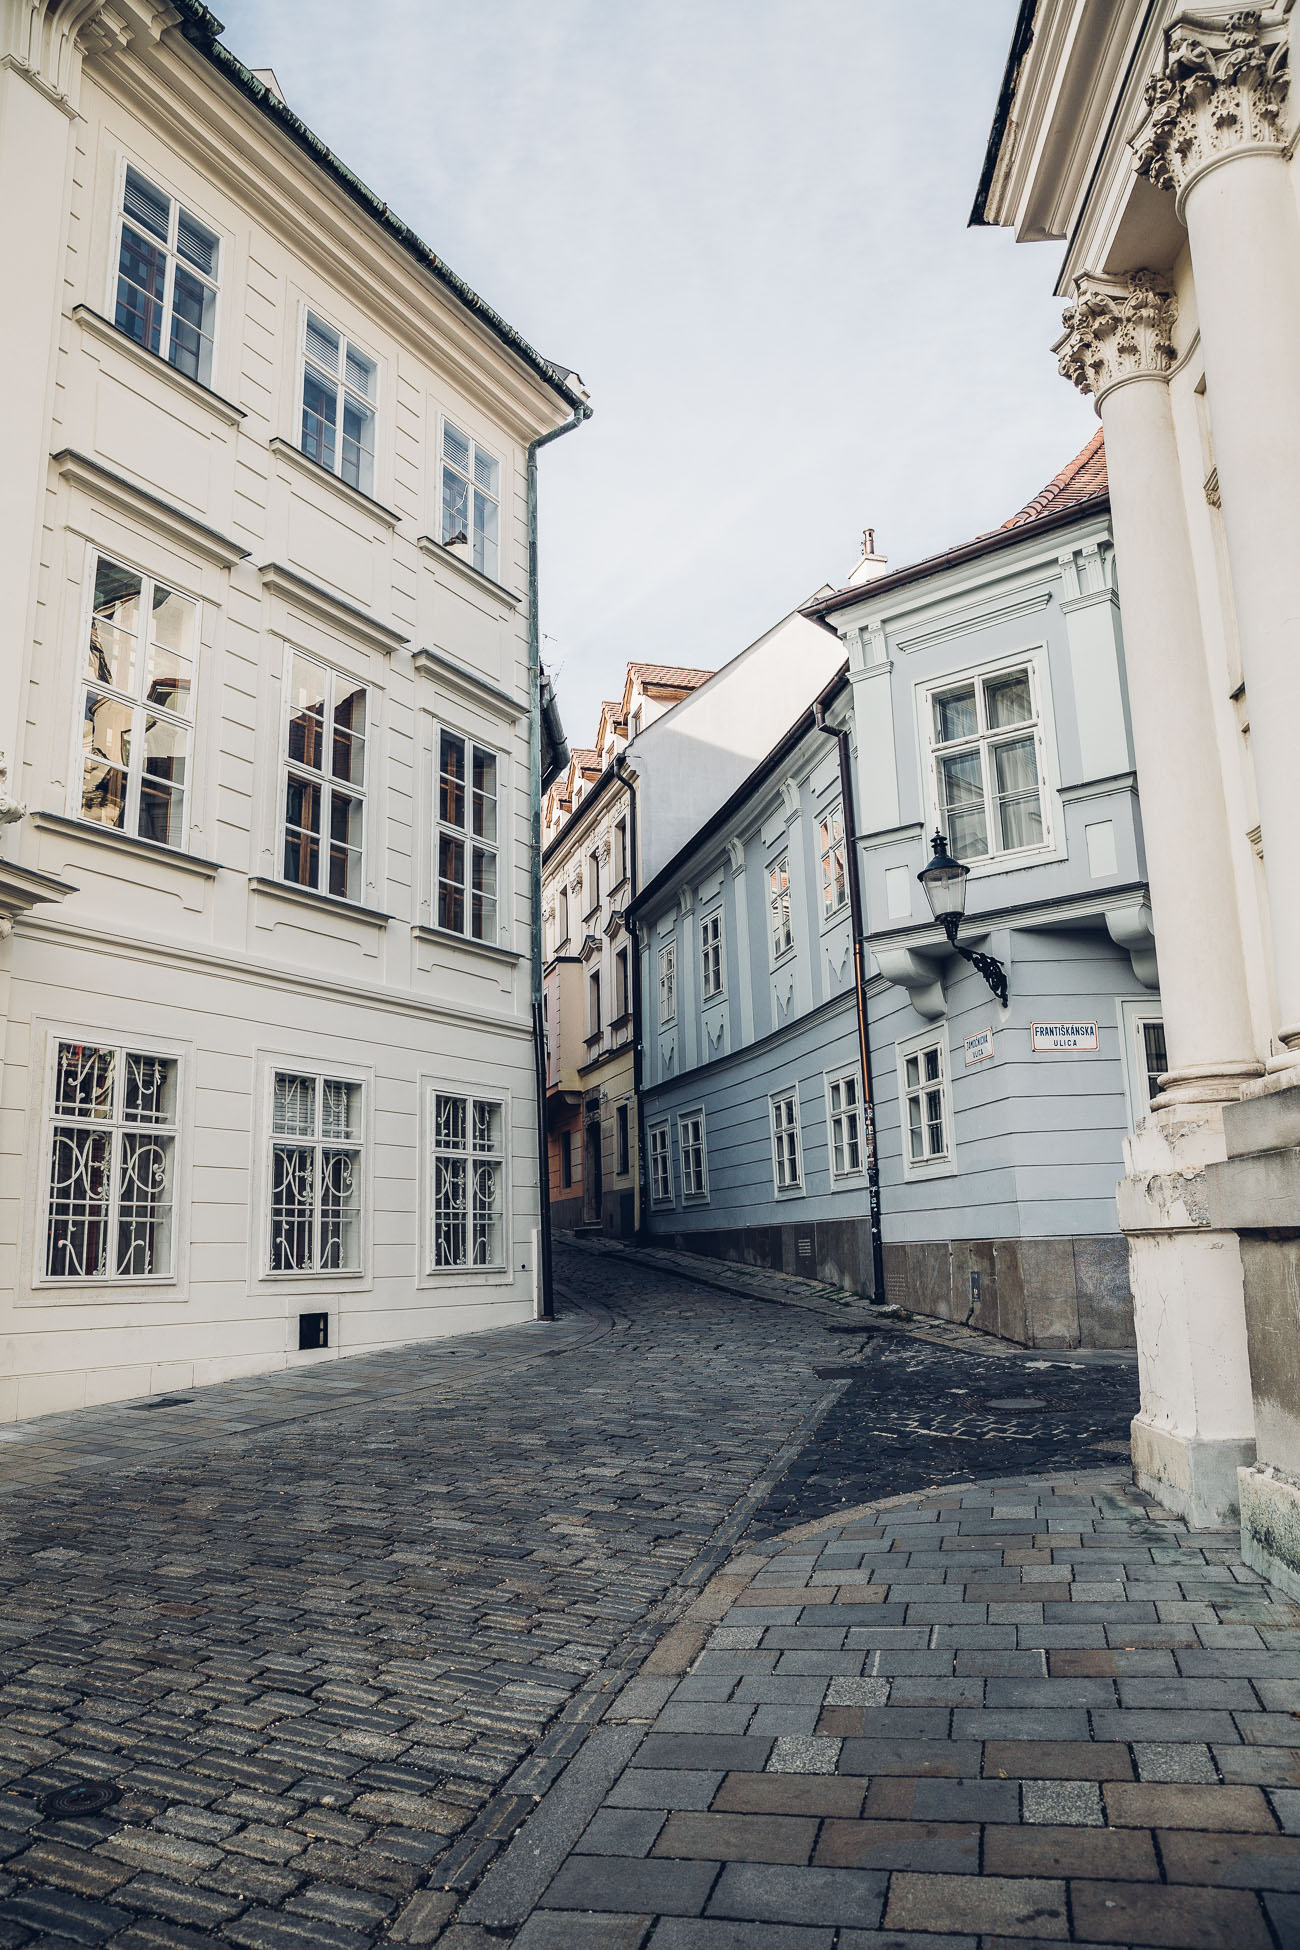 Streets of Old Town of Bratislava